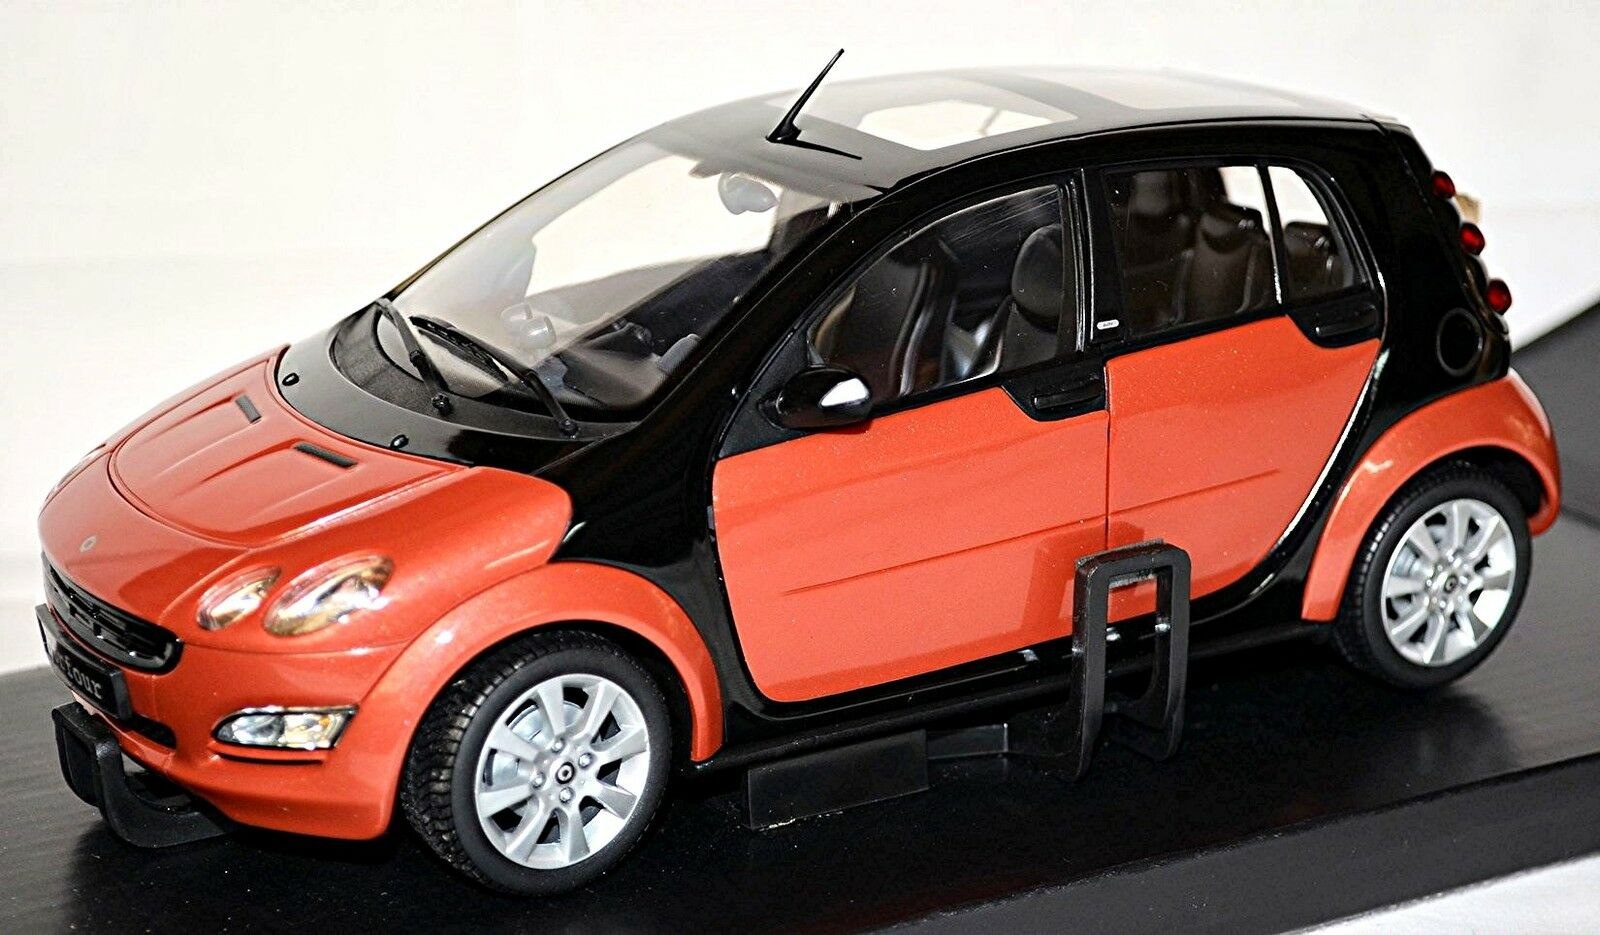 SMART FORFOUR w 454 Limousine 2004-06 Red Metallic Flame Red 1 18 Kyosho